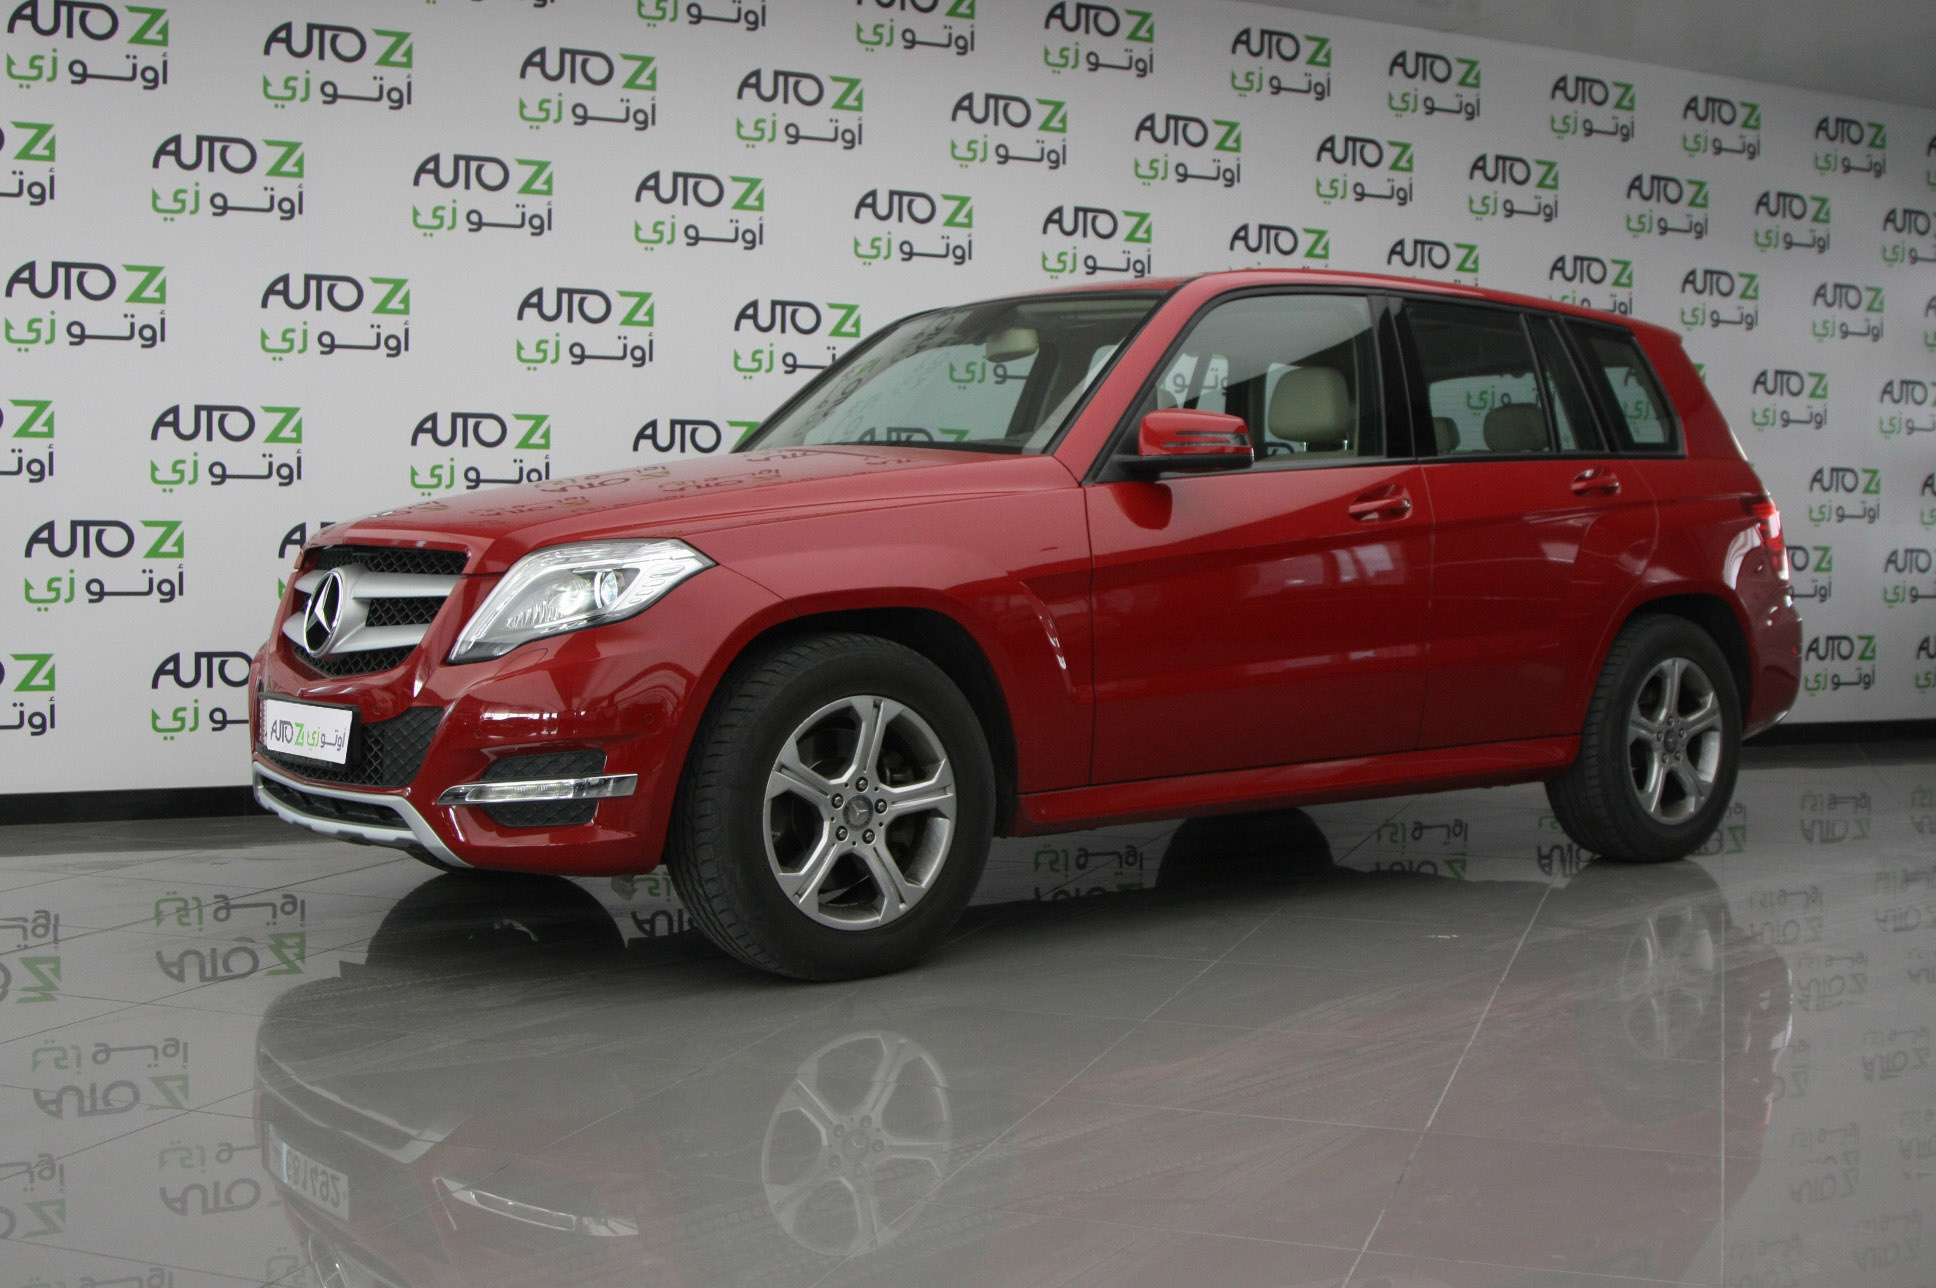 Get Best Used Car Deals With AutoZ | The Best Car Showroom ...